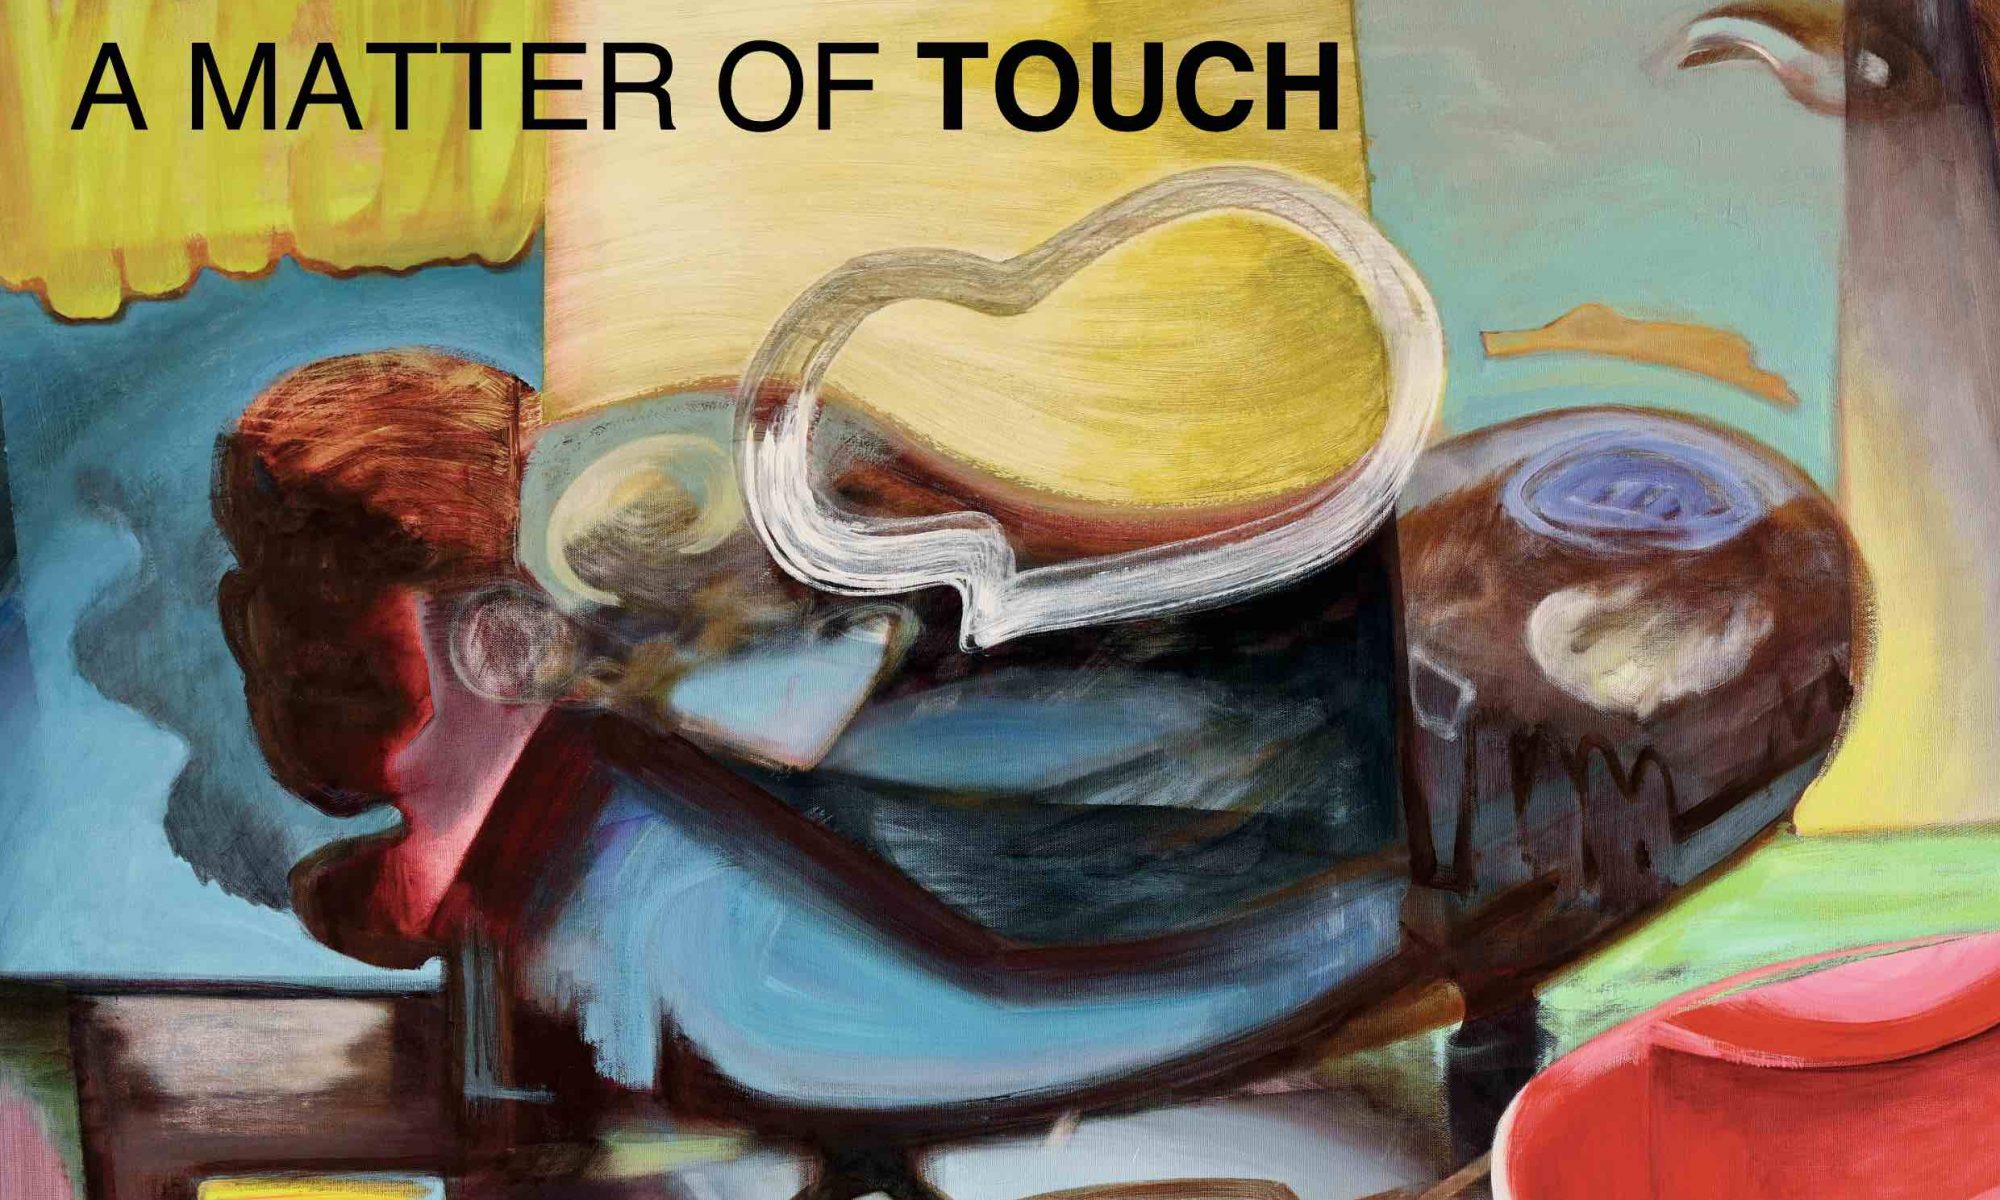 Exhibition A Matter of Touch, invitation card